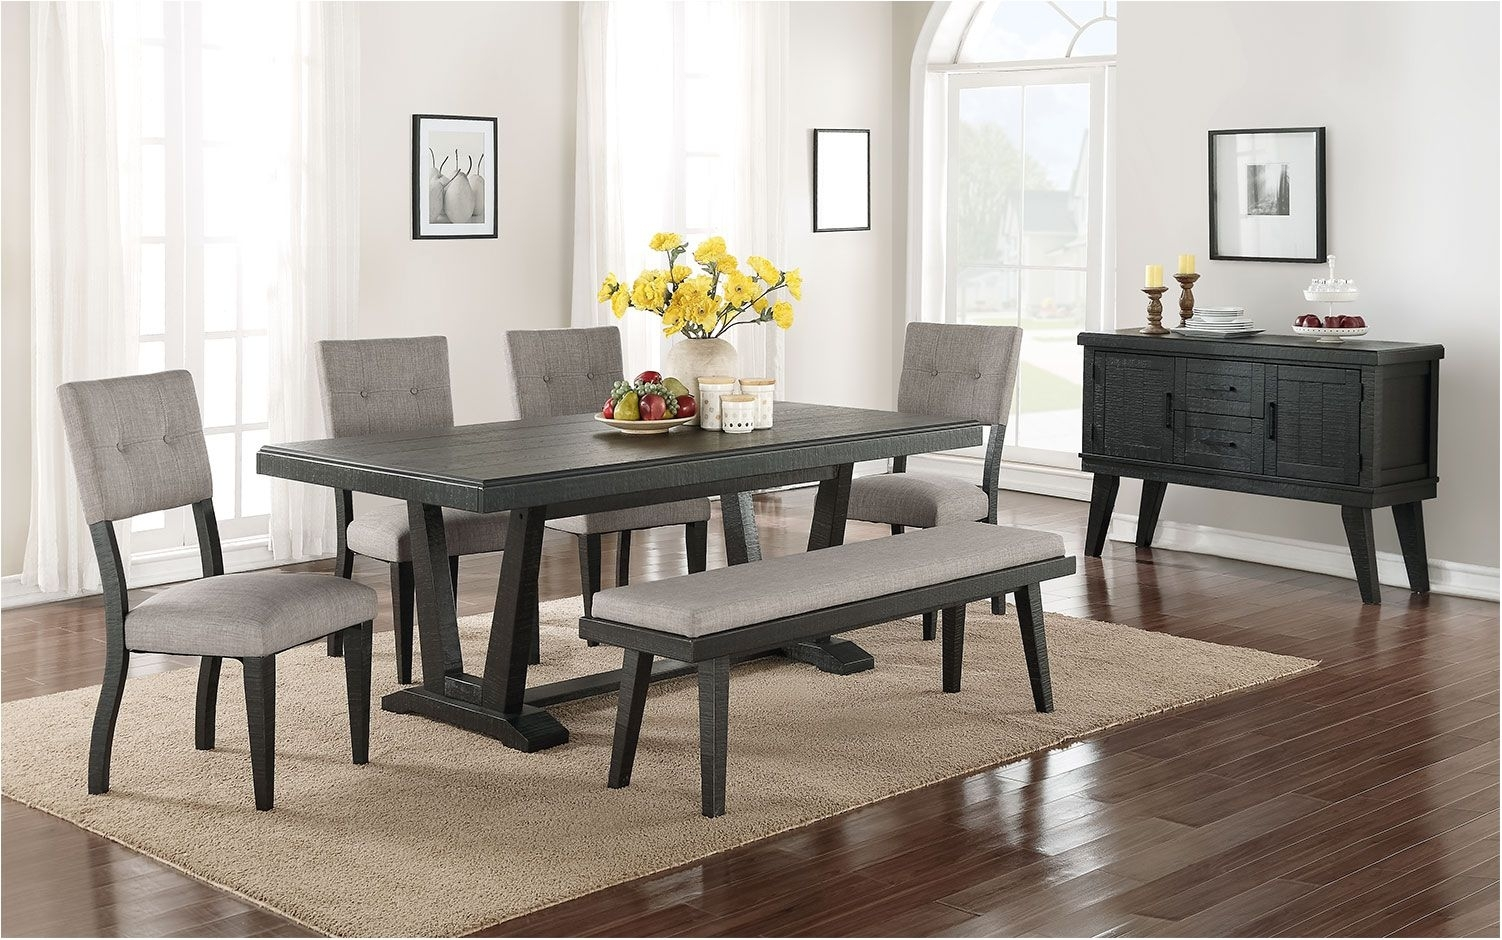 Stunning 6 Piece Dining Room Set Black And Grey Leon – Dining Room For Most Recently Released Leon 7 Piece Dining Sets (View 10 of 20)